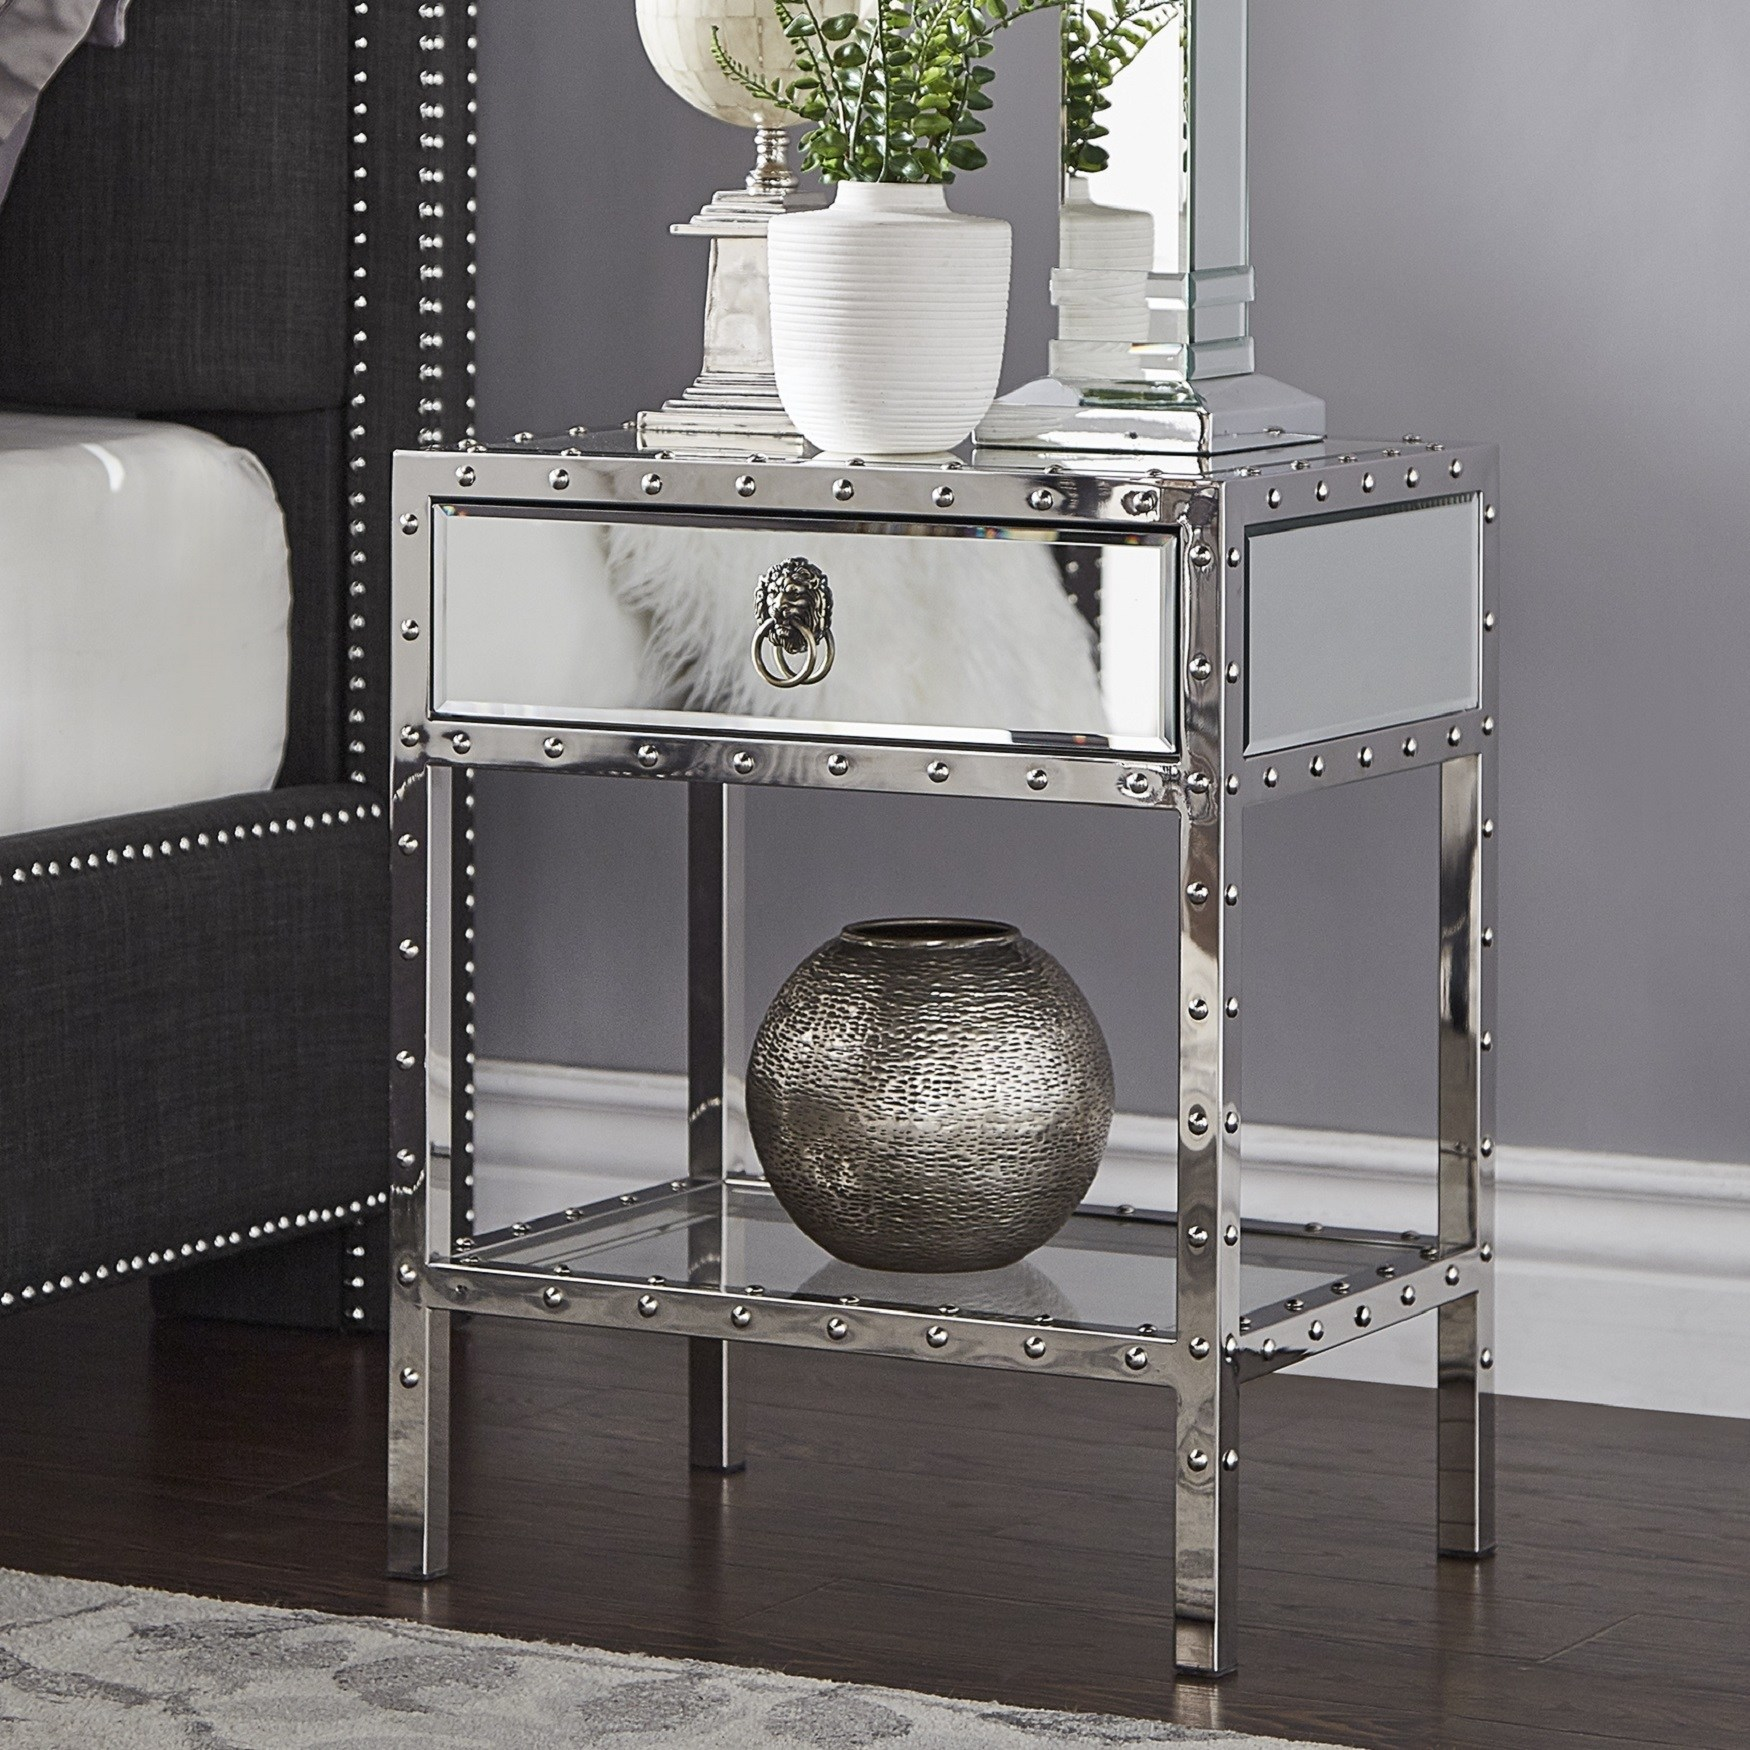 carter riveted stainless steel mirrored accent table inspire bold room essentials metal patio west elm reclaimed wood standard end height tray side beach bedroom decor parasol